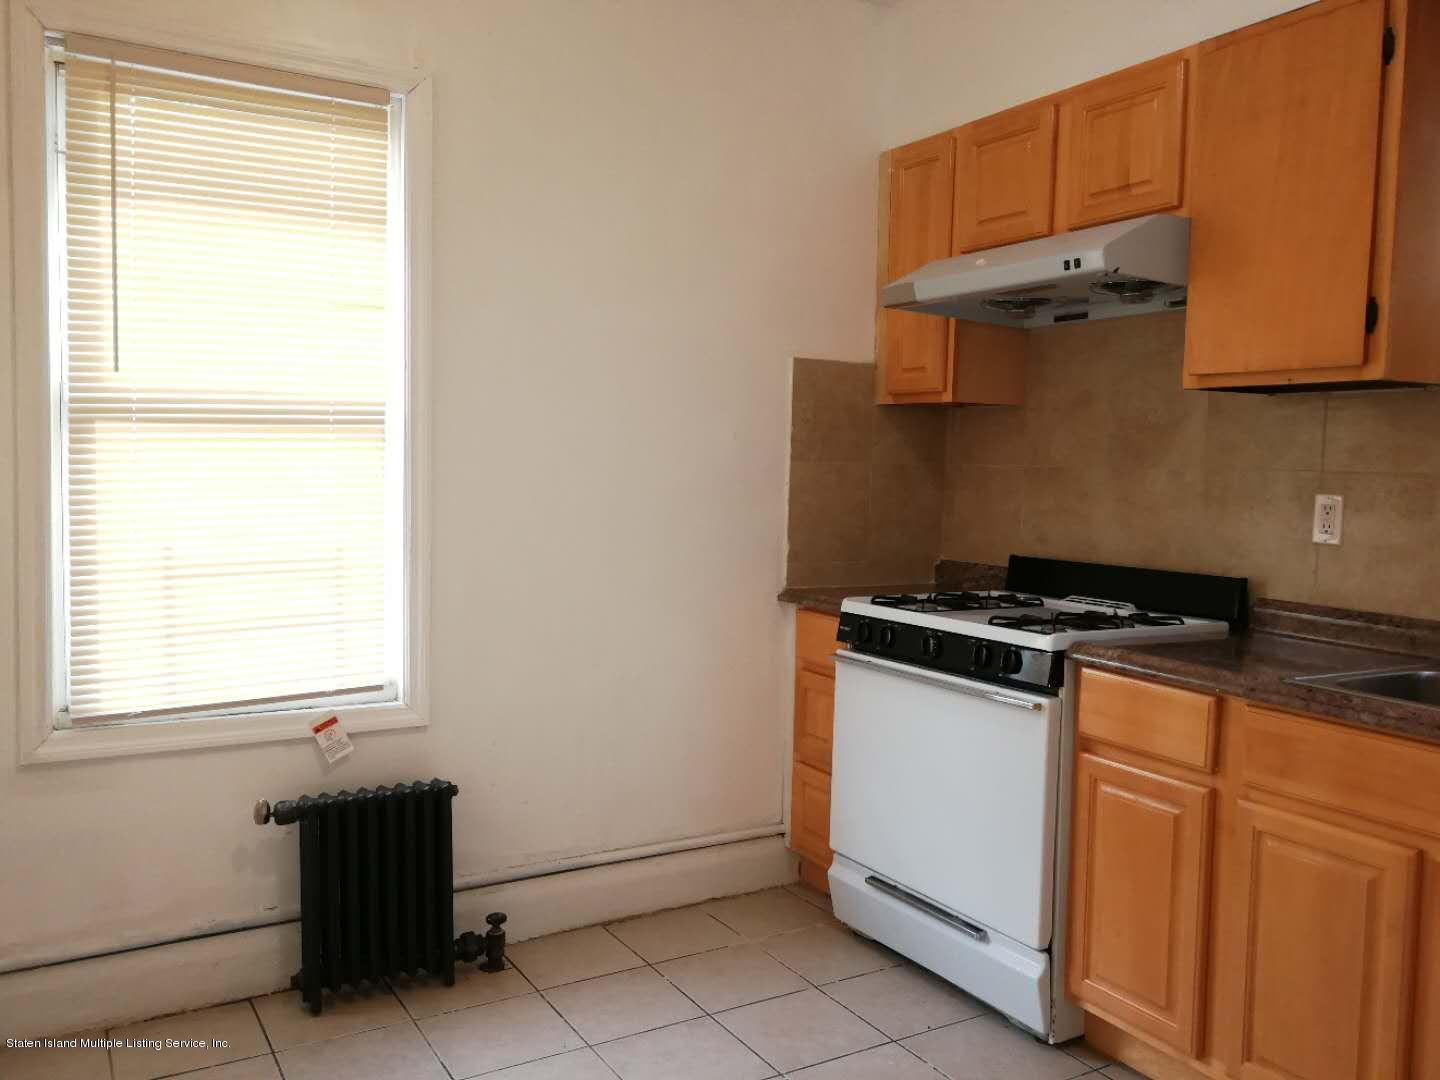 Two Family - Detached 70 Van Buren Street  Staten Island, NY 10301, MLS-1124773-9